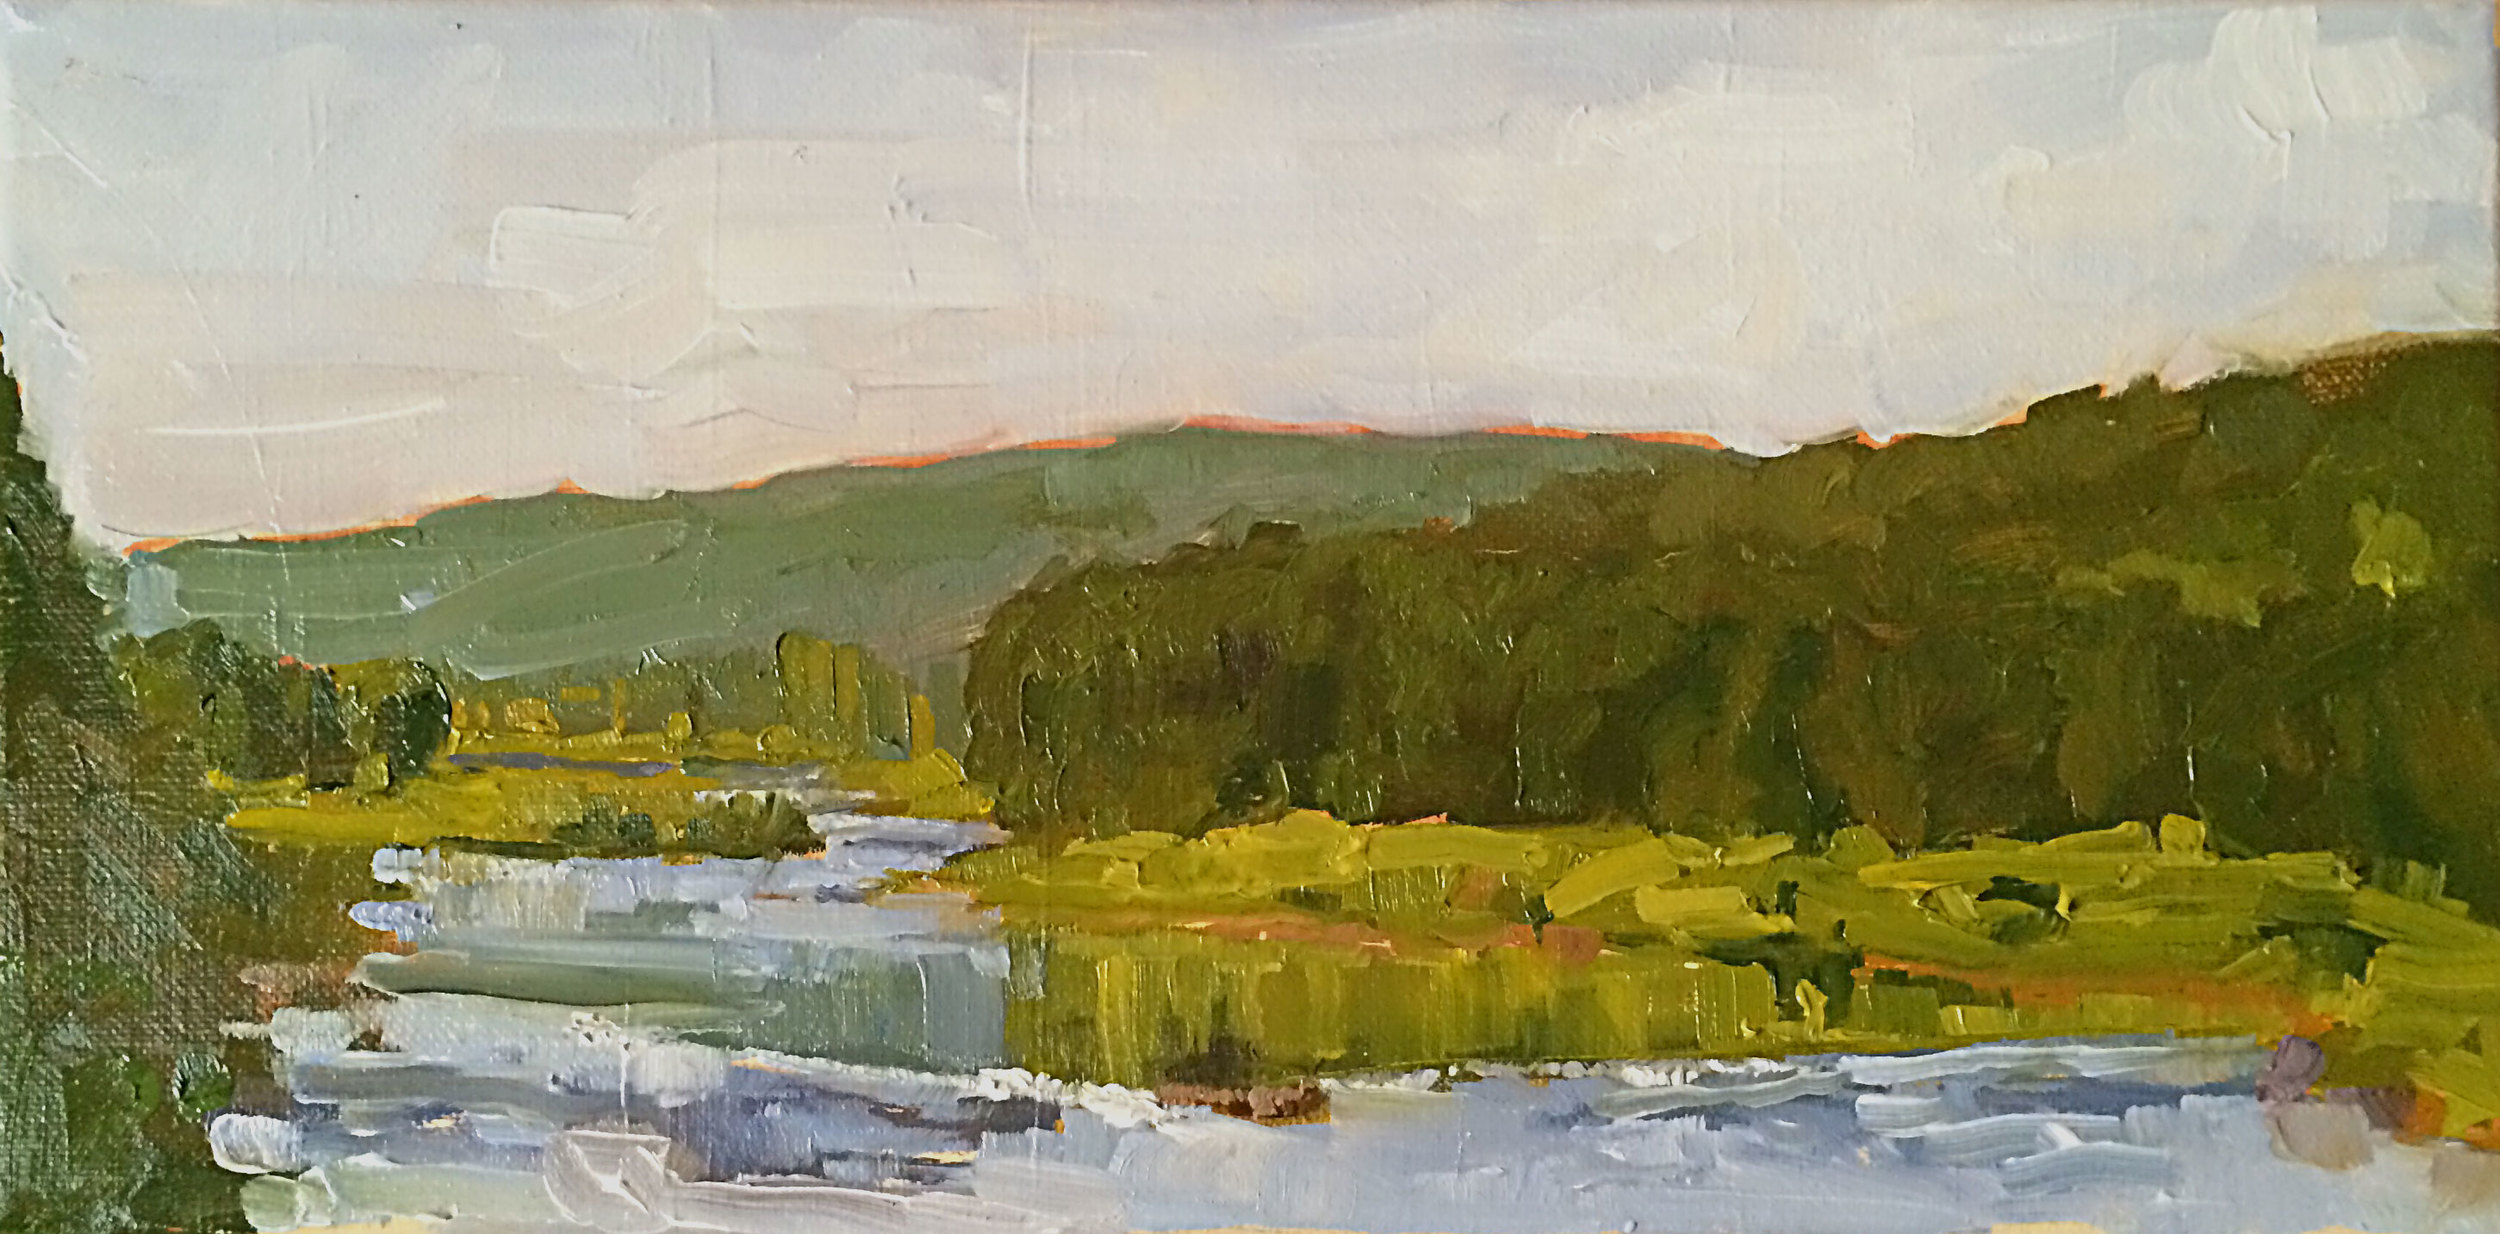 Eel Weir Number 1   (along the Delaware) Oil on canvas 14 x 7